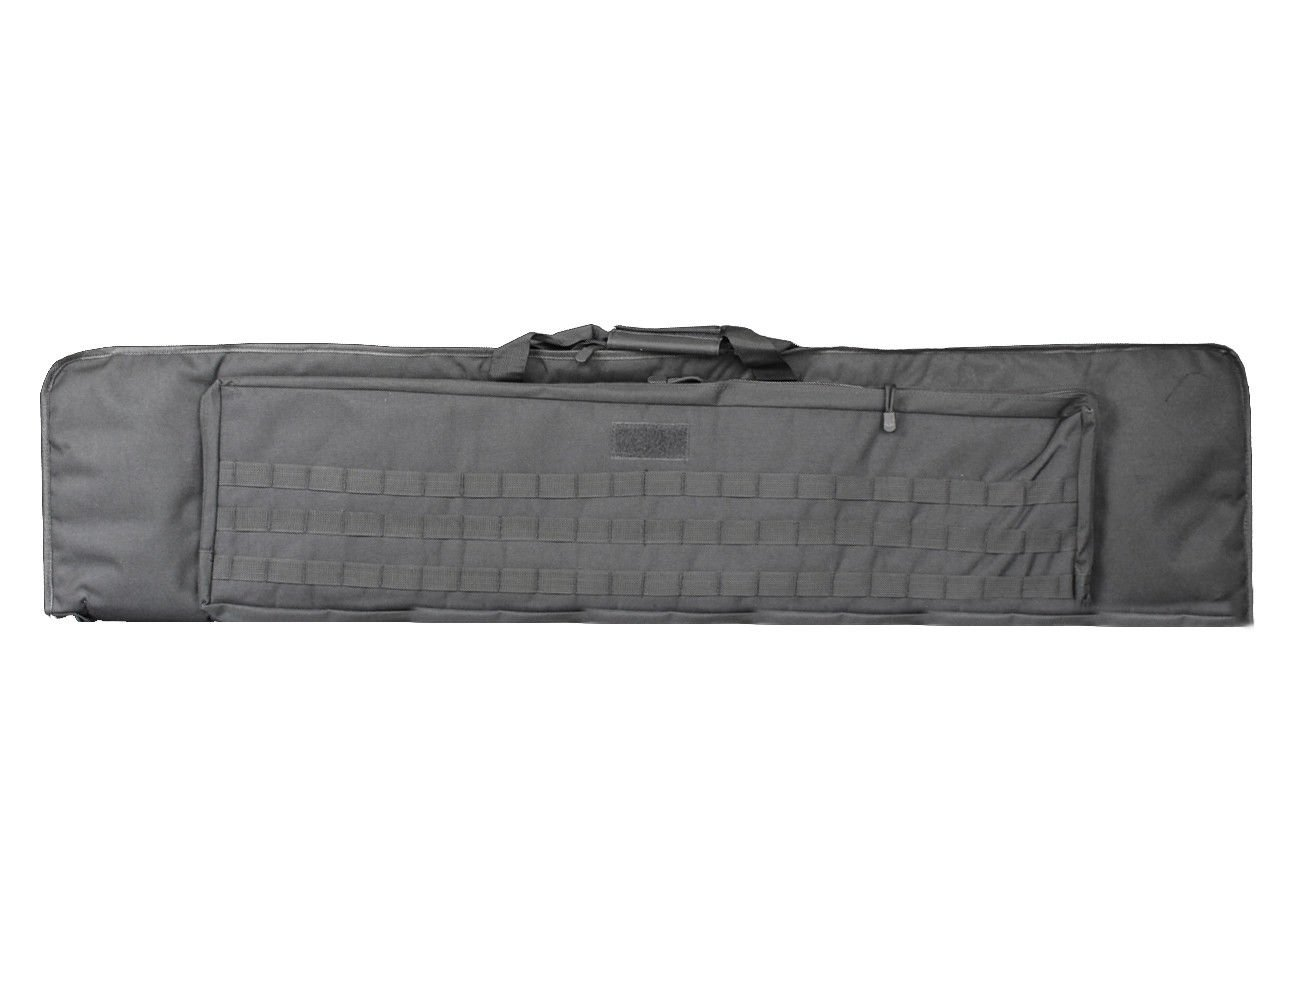 A&N Airsoft Gun Rifle Large Carrying Bag Pack Storage Case 120cm MOLLE w/ Accessory Pouches Webbing Compartments